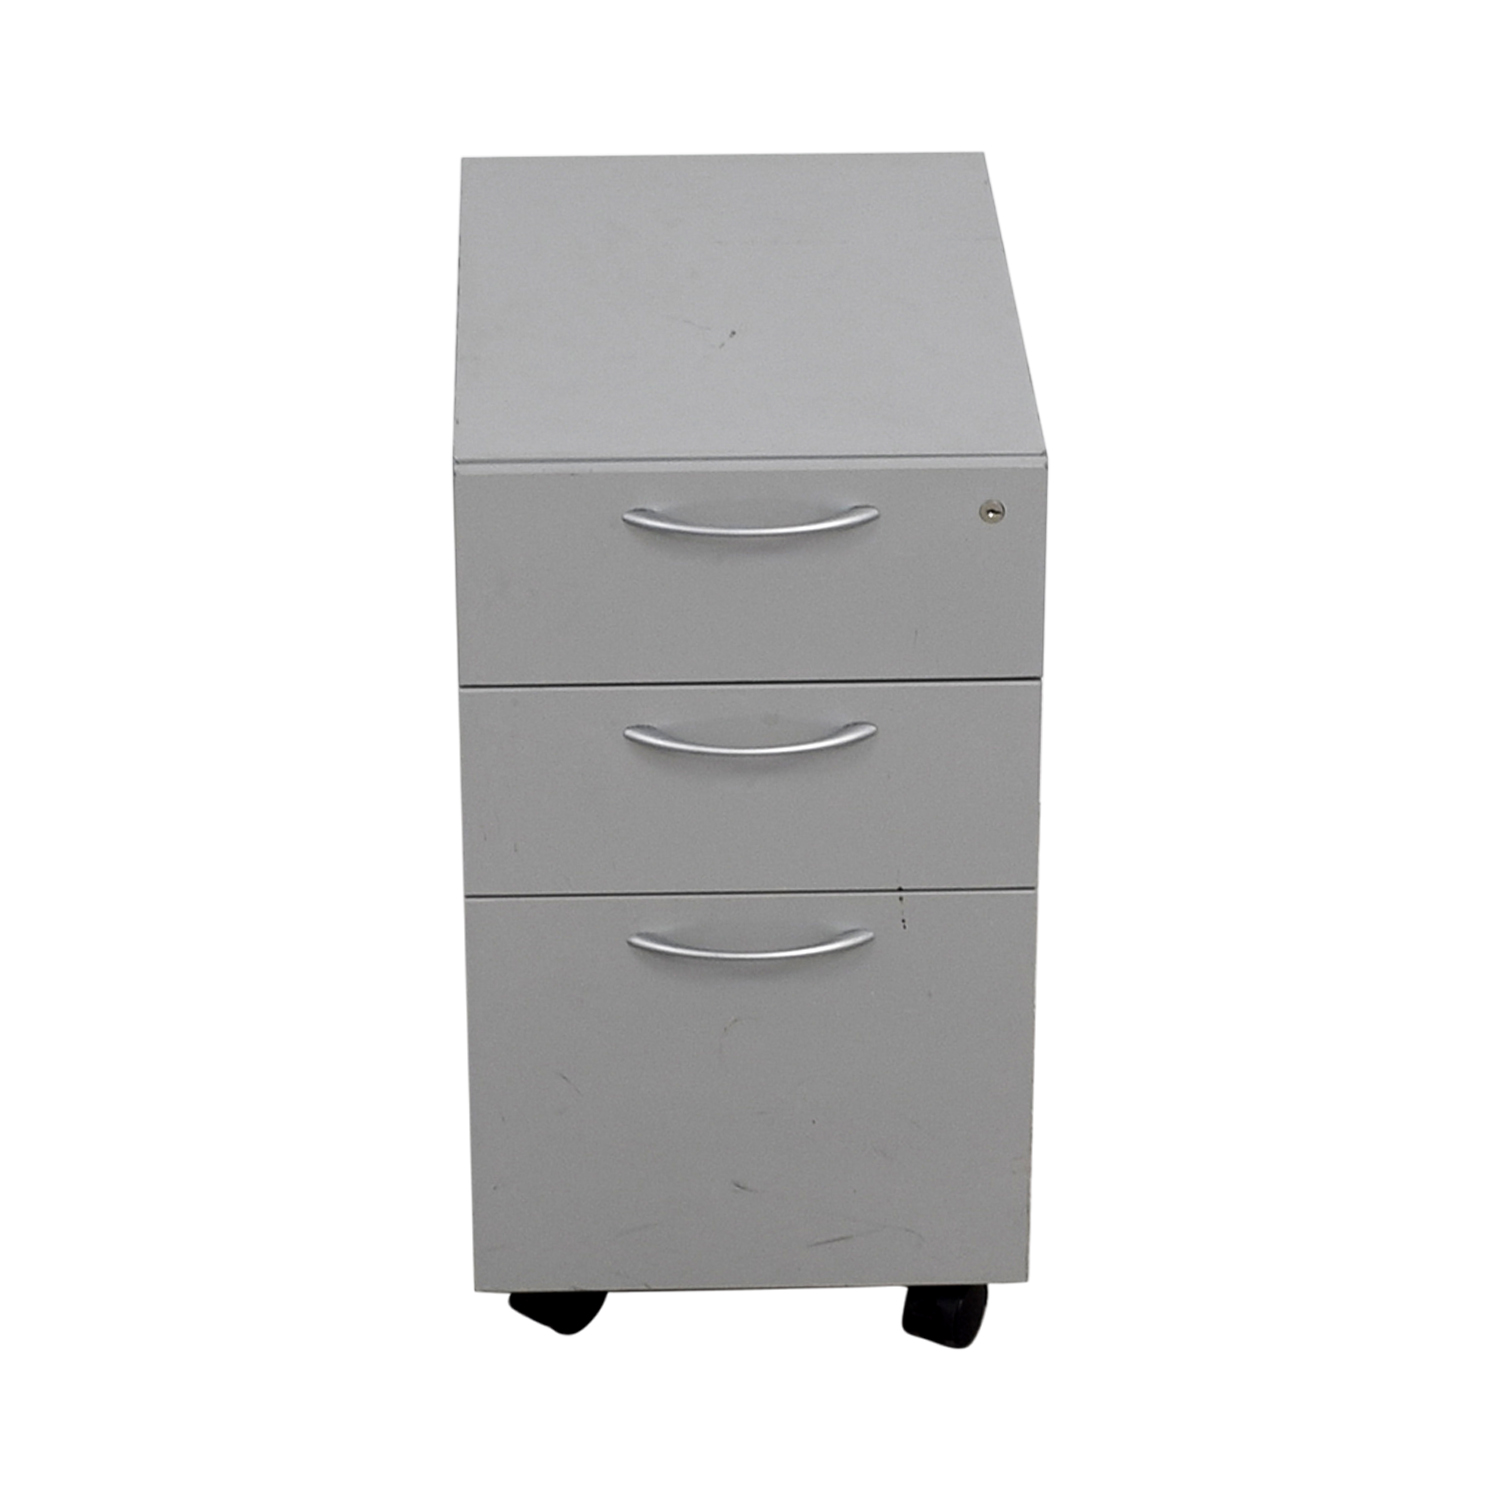 Allsteel Allsteel Light Grey Two-Drawer Cabinet on Casters nyc